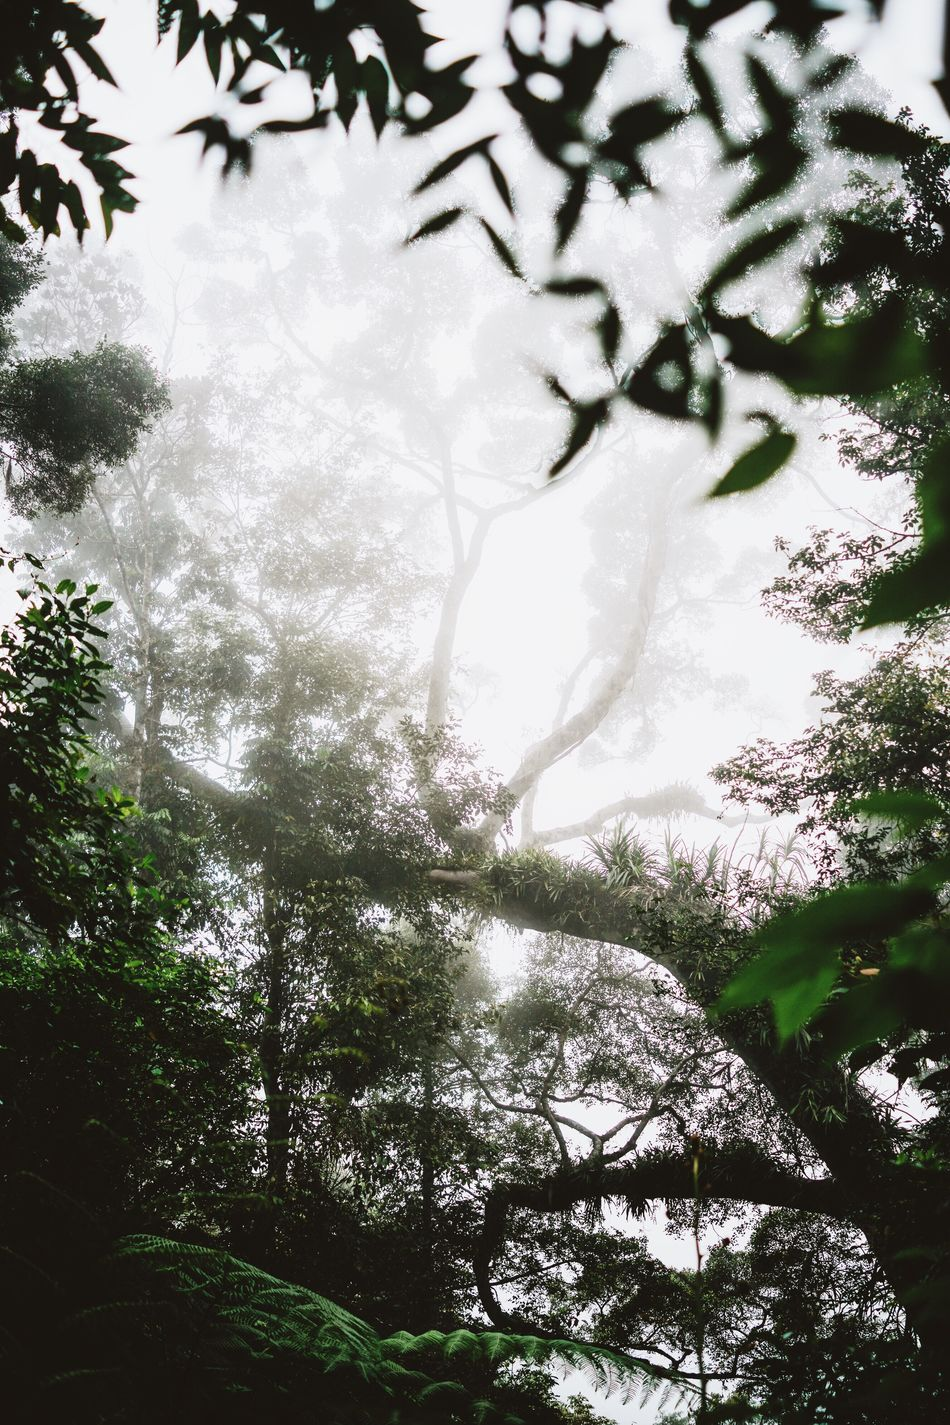 foggy forest on the way to Wae Rebo Tree Nature Beauty In Nature Forest Branch Plant Leaf Outdoors Day No People Rainforest Jungle Green Moss Foggy Misty Magic Fairytale  Ferns Lush Greenery Vegetation INDONESIA Flores Southeastasia Trekking